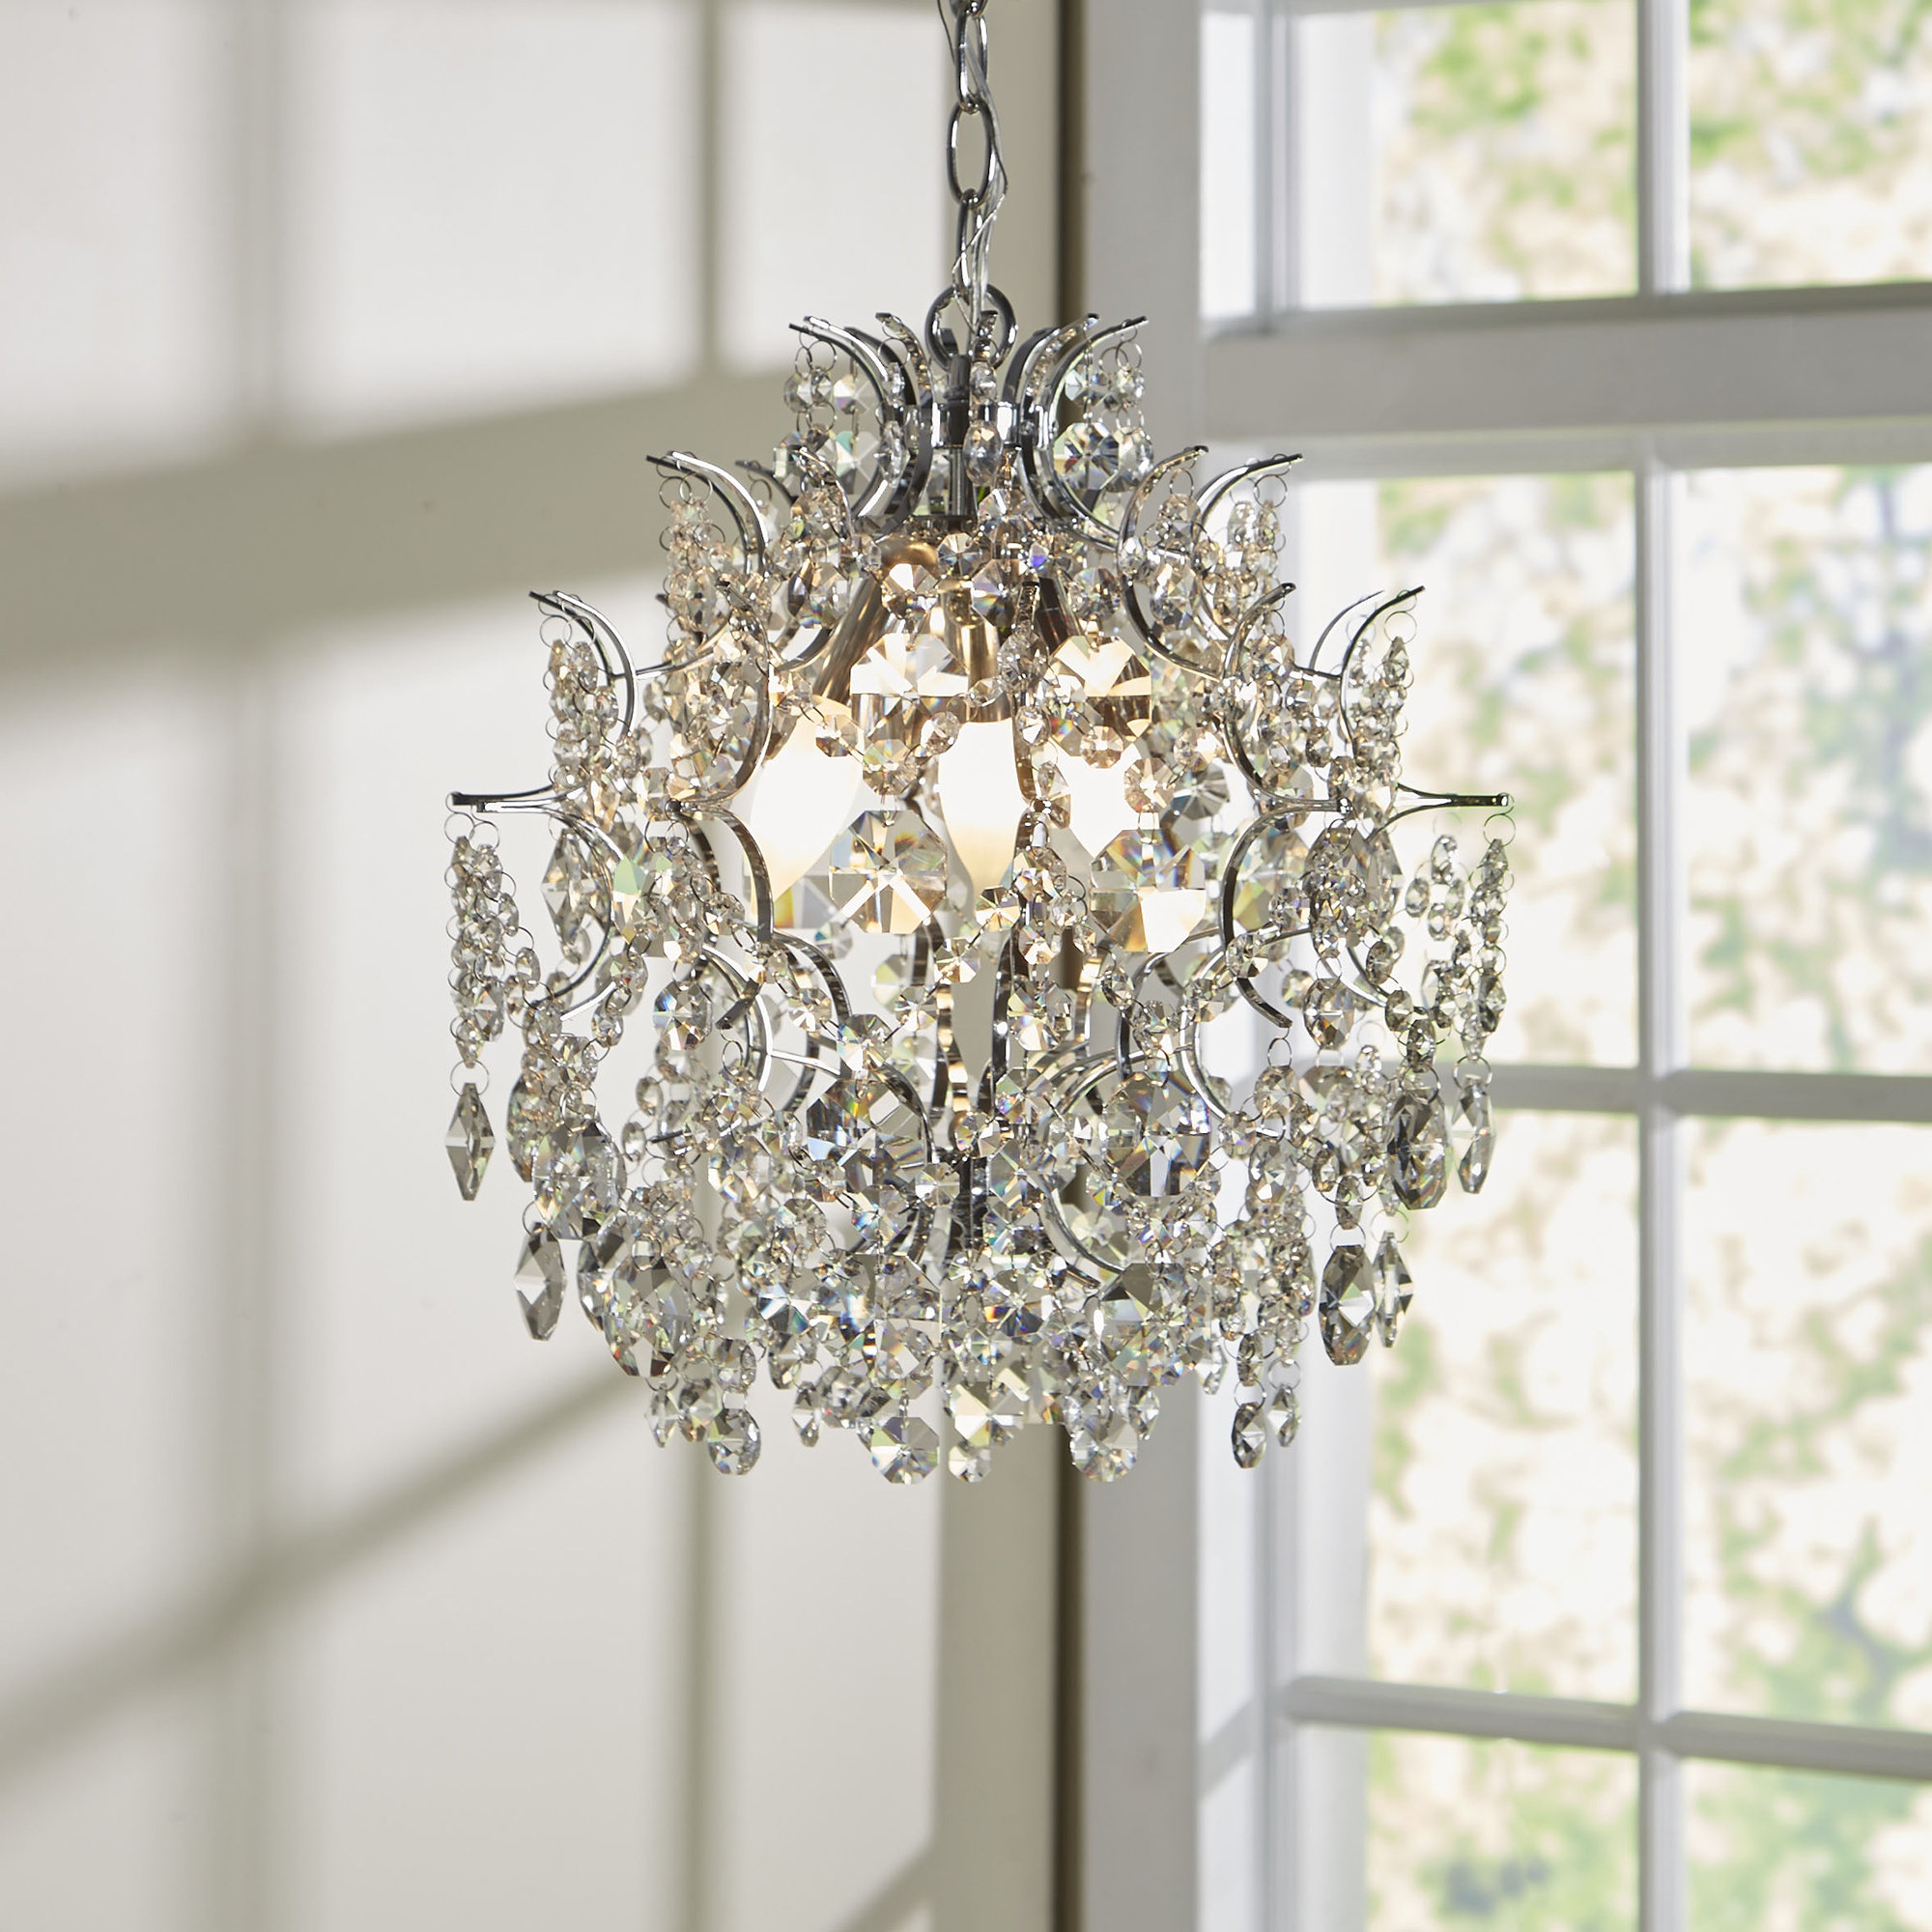 Famous Farmhouse & Rustic Willa Arlo Interiors Chandeliers (View 14 of 25)